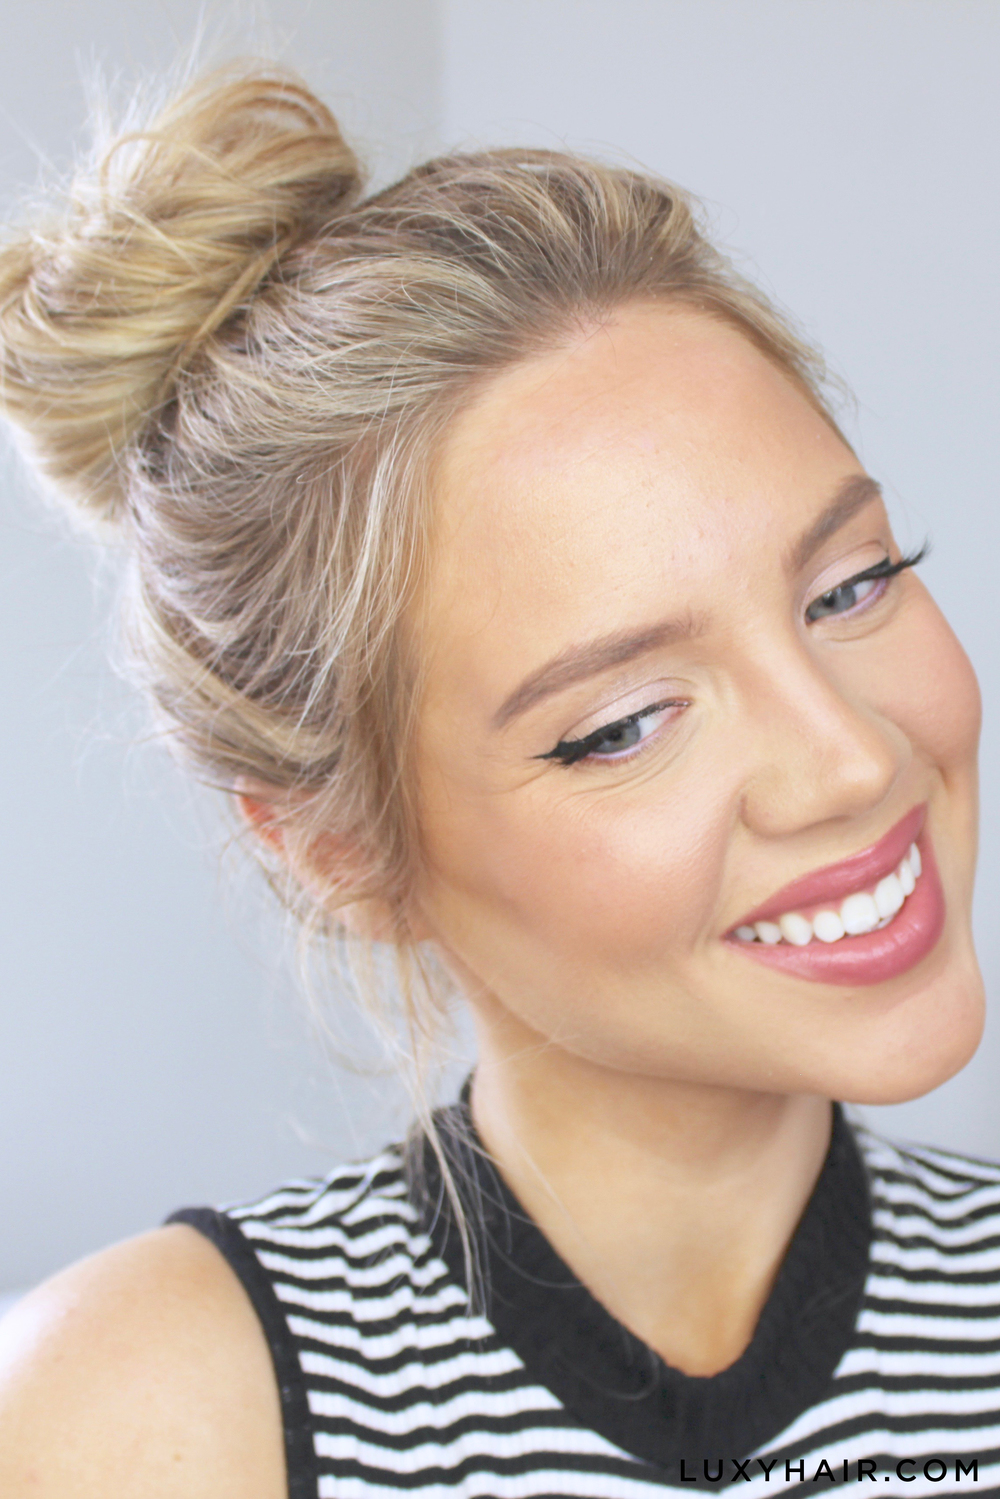 Messy Bun: How To Do A Messy Bun - 3 Cute & Easy Steps – Luxy Hair